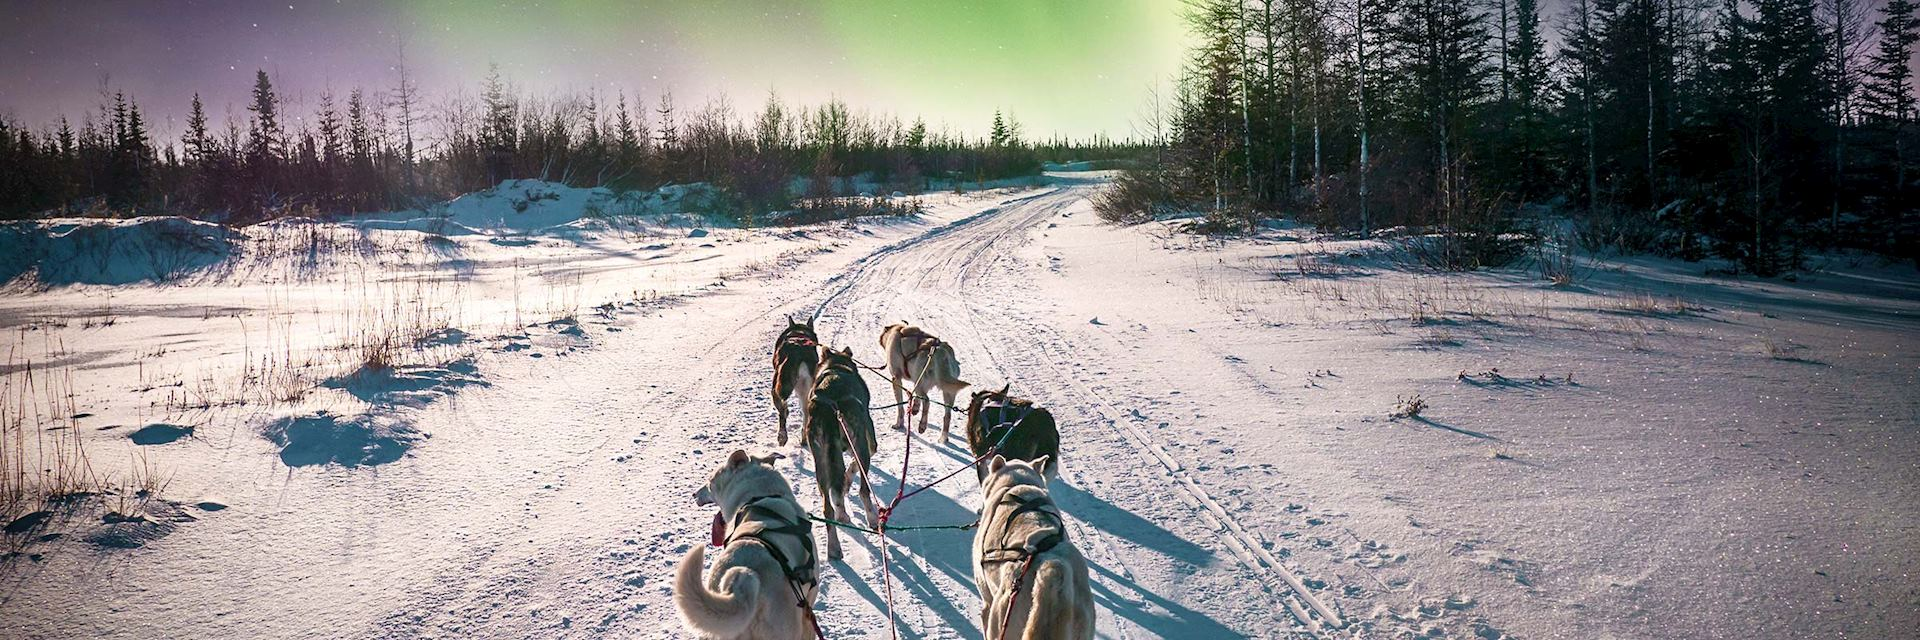 Dog sledding near Whitehorse